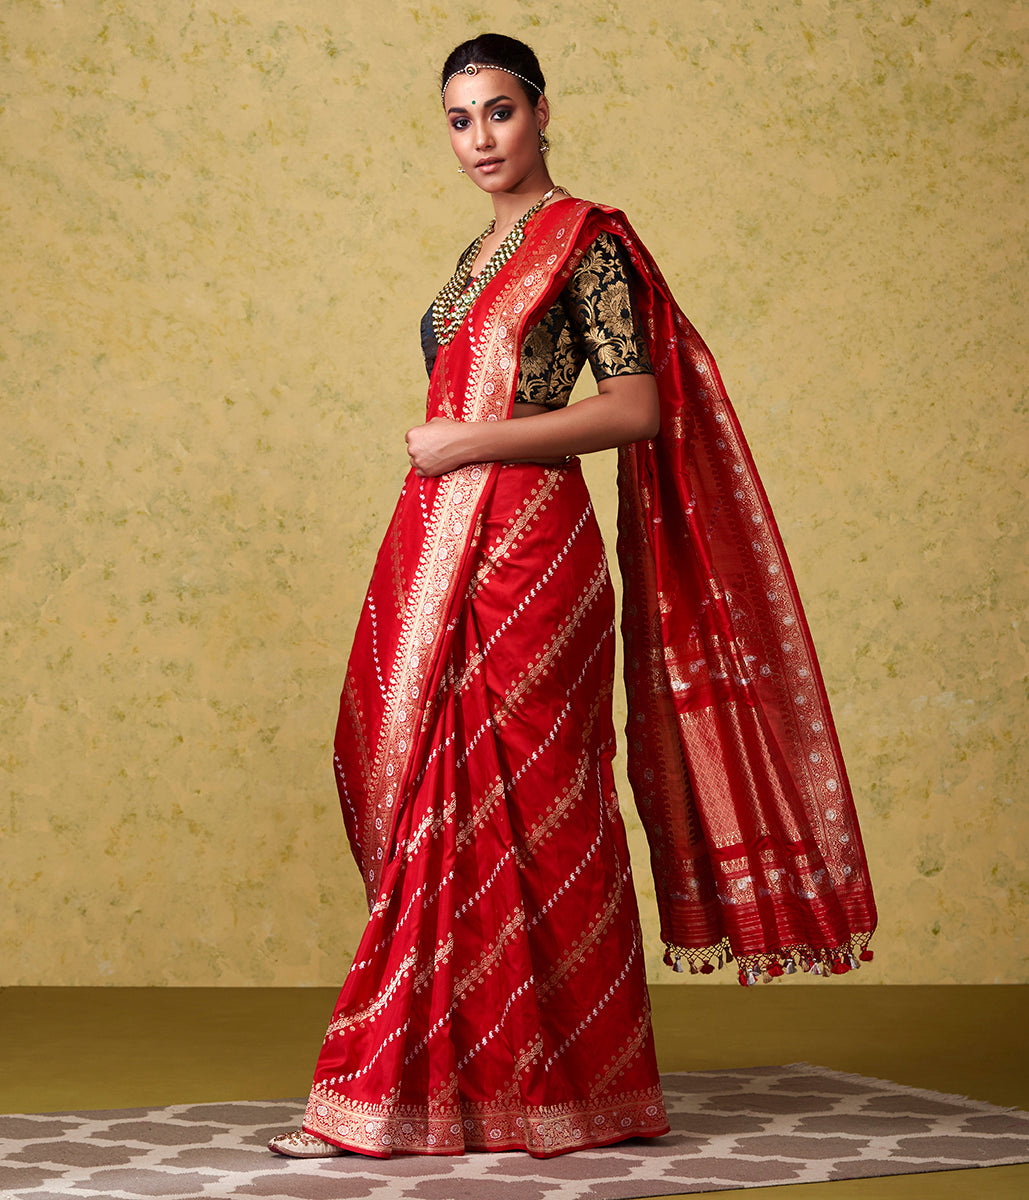 Handwoven Red Aada Jangla with Gold and Silver Zari